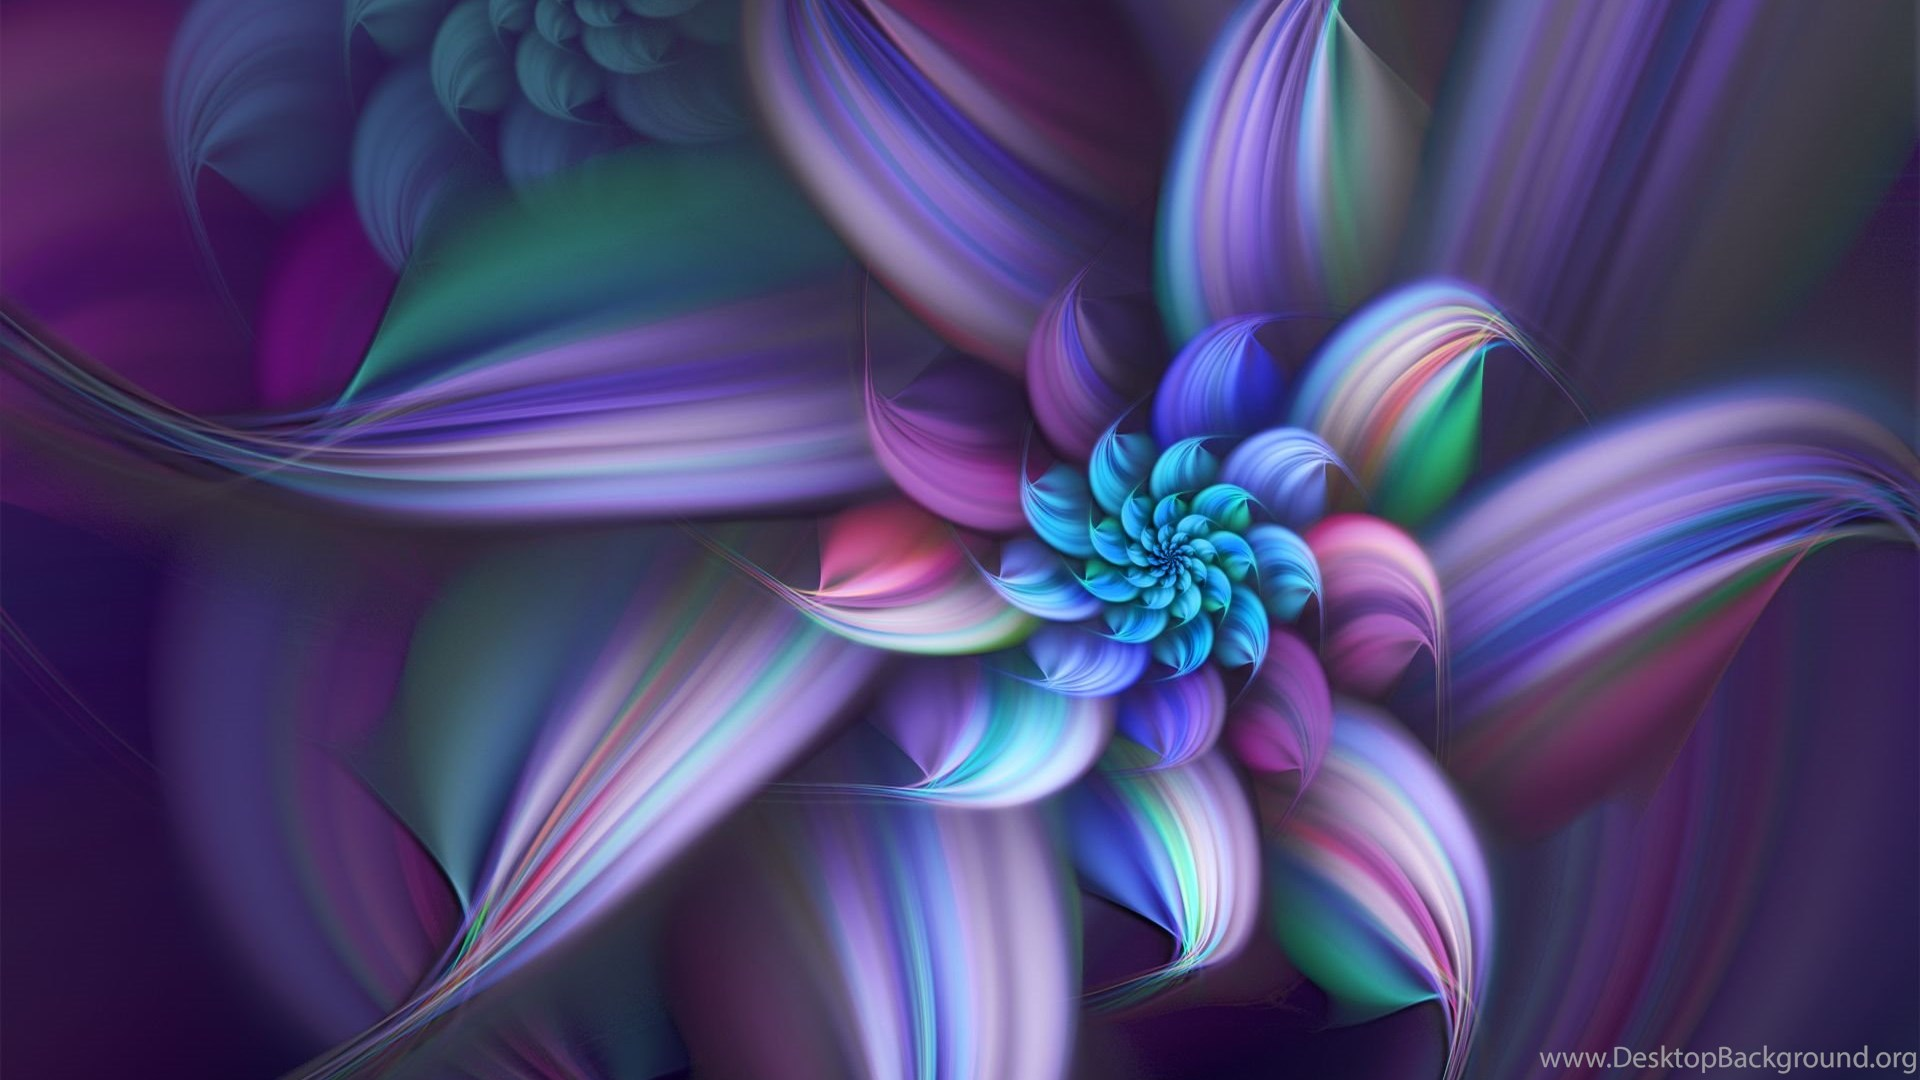 Blue Dahlia Flower Wallpapers 247463 Desktop Background